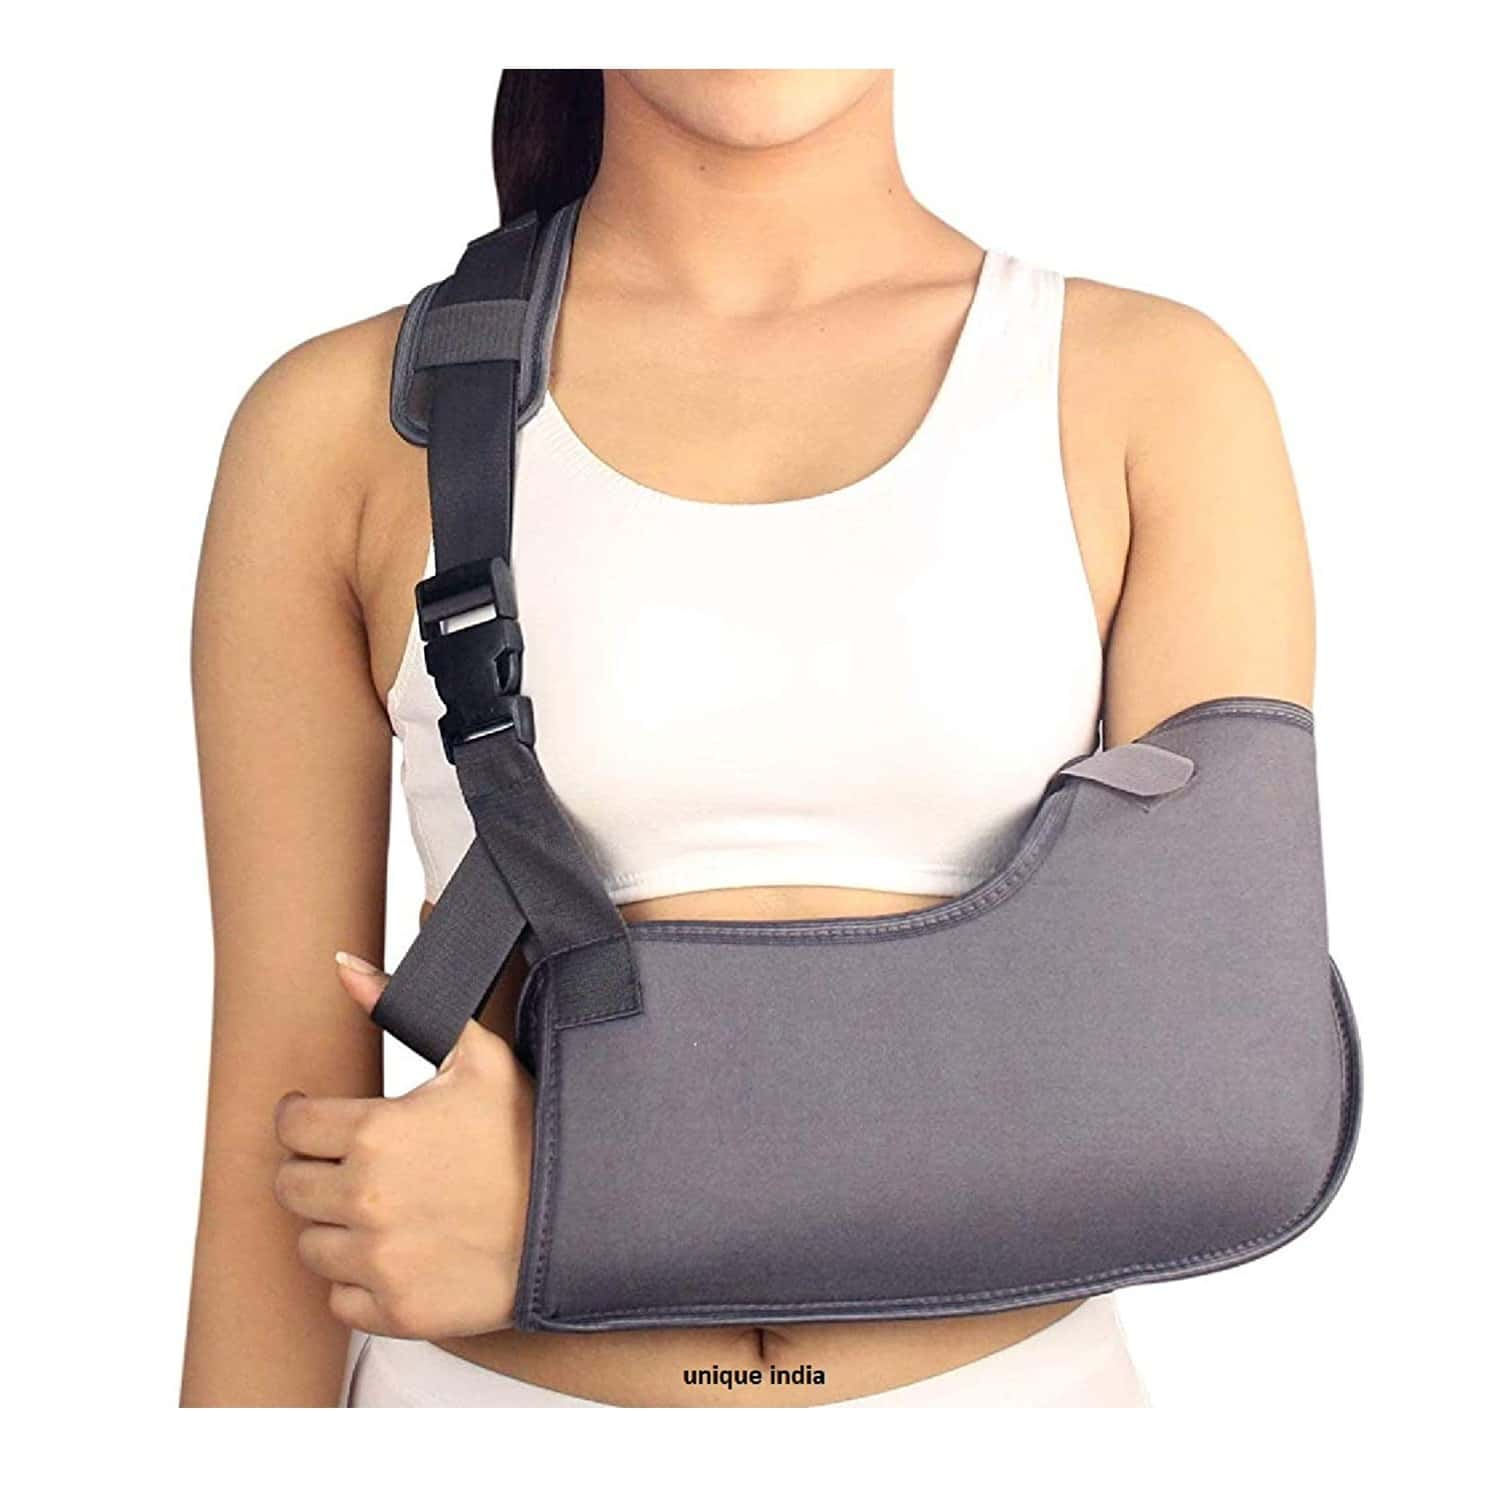 Tynor Pouch Arm Sling Tropical ( Immobilization,support) - Large